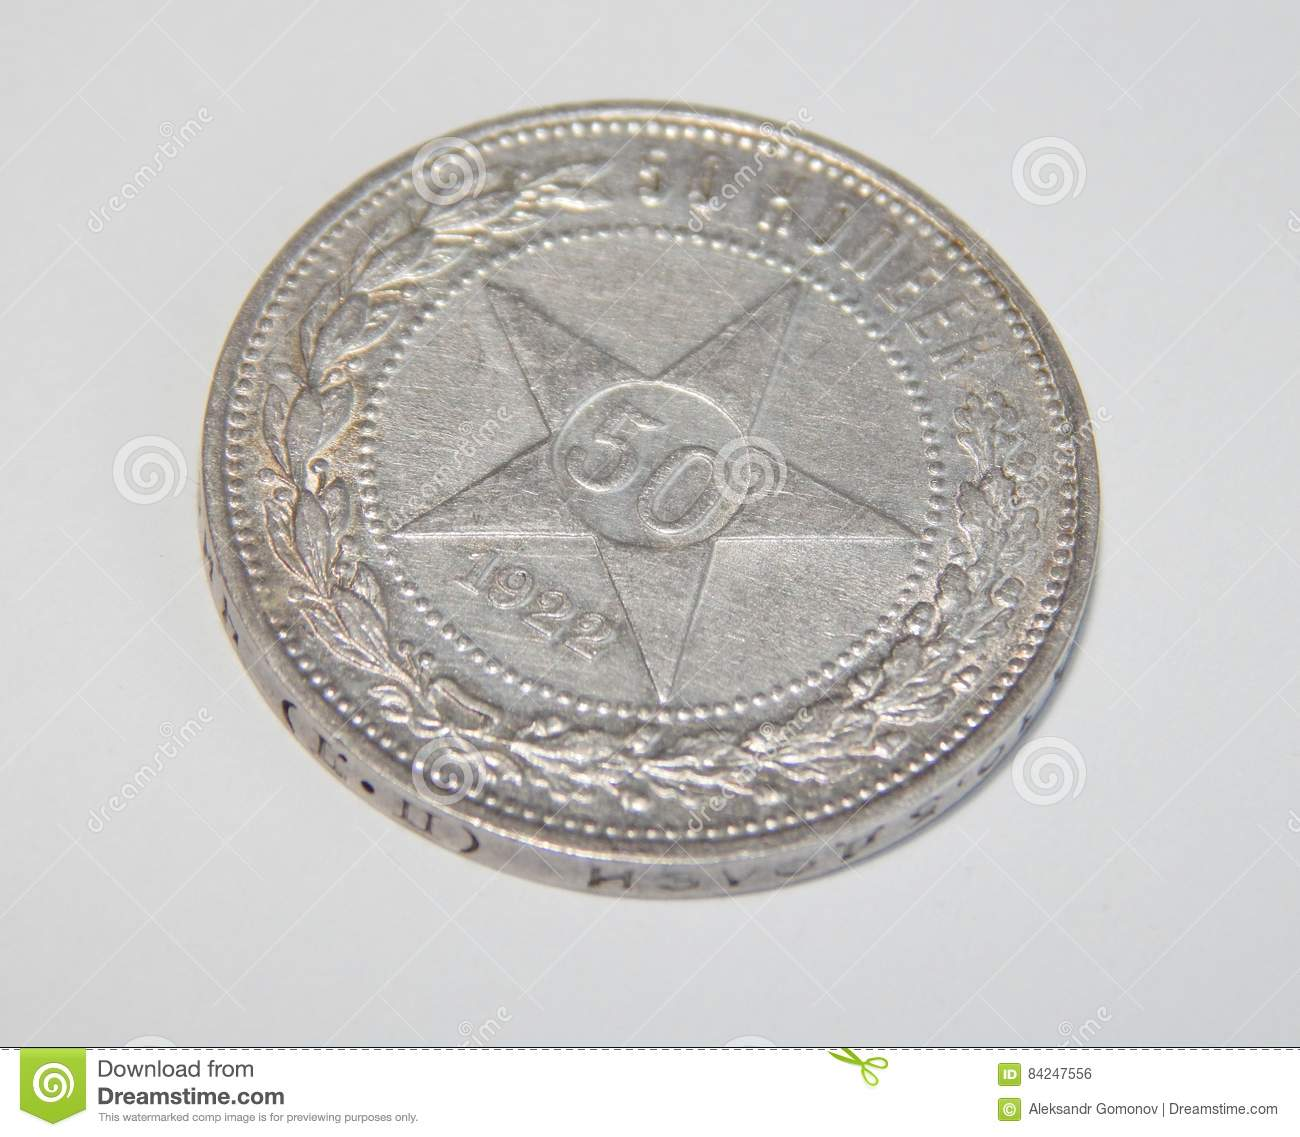 Where to sell coins of the USSR 88